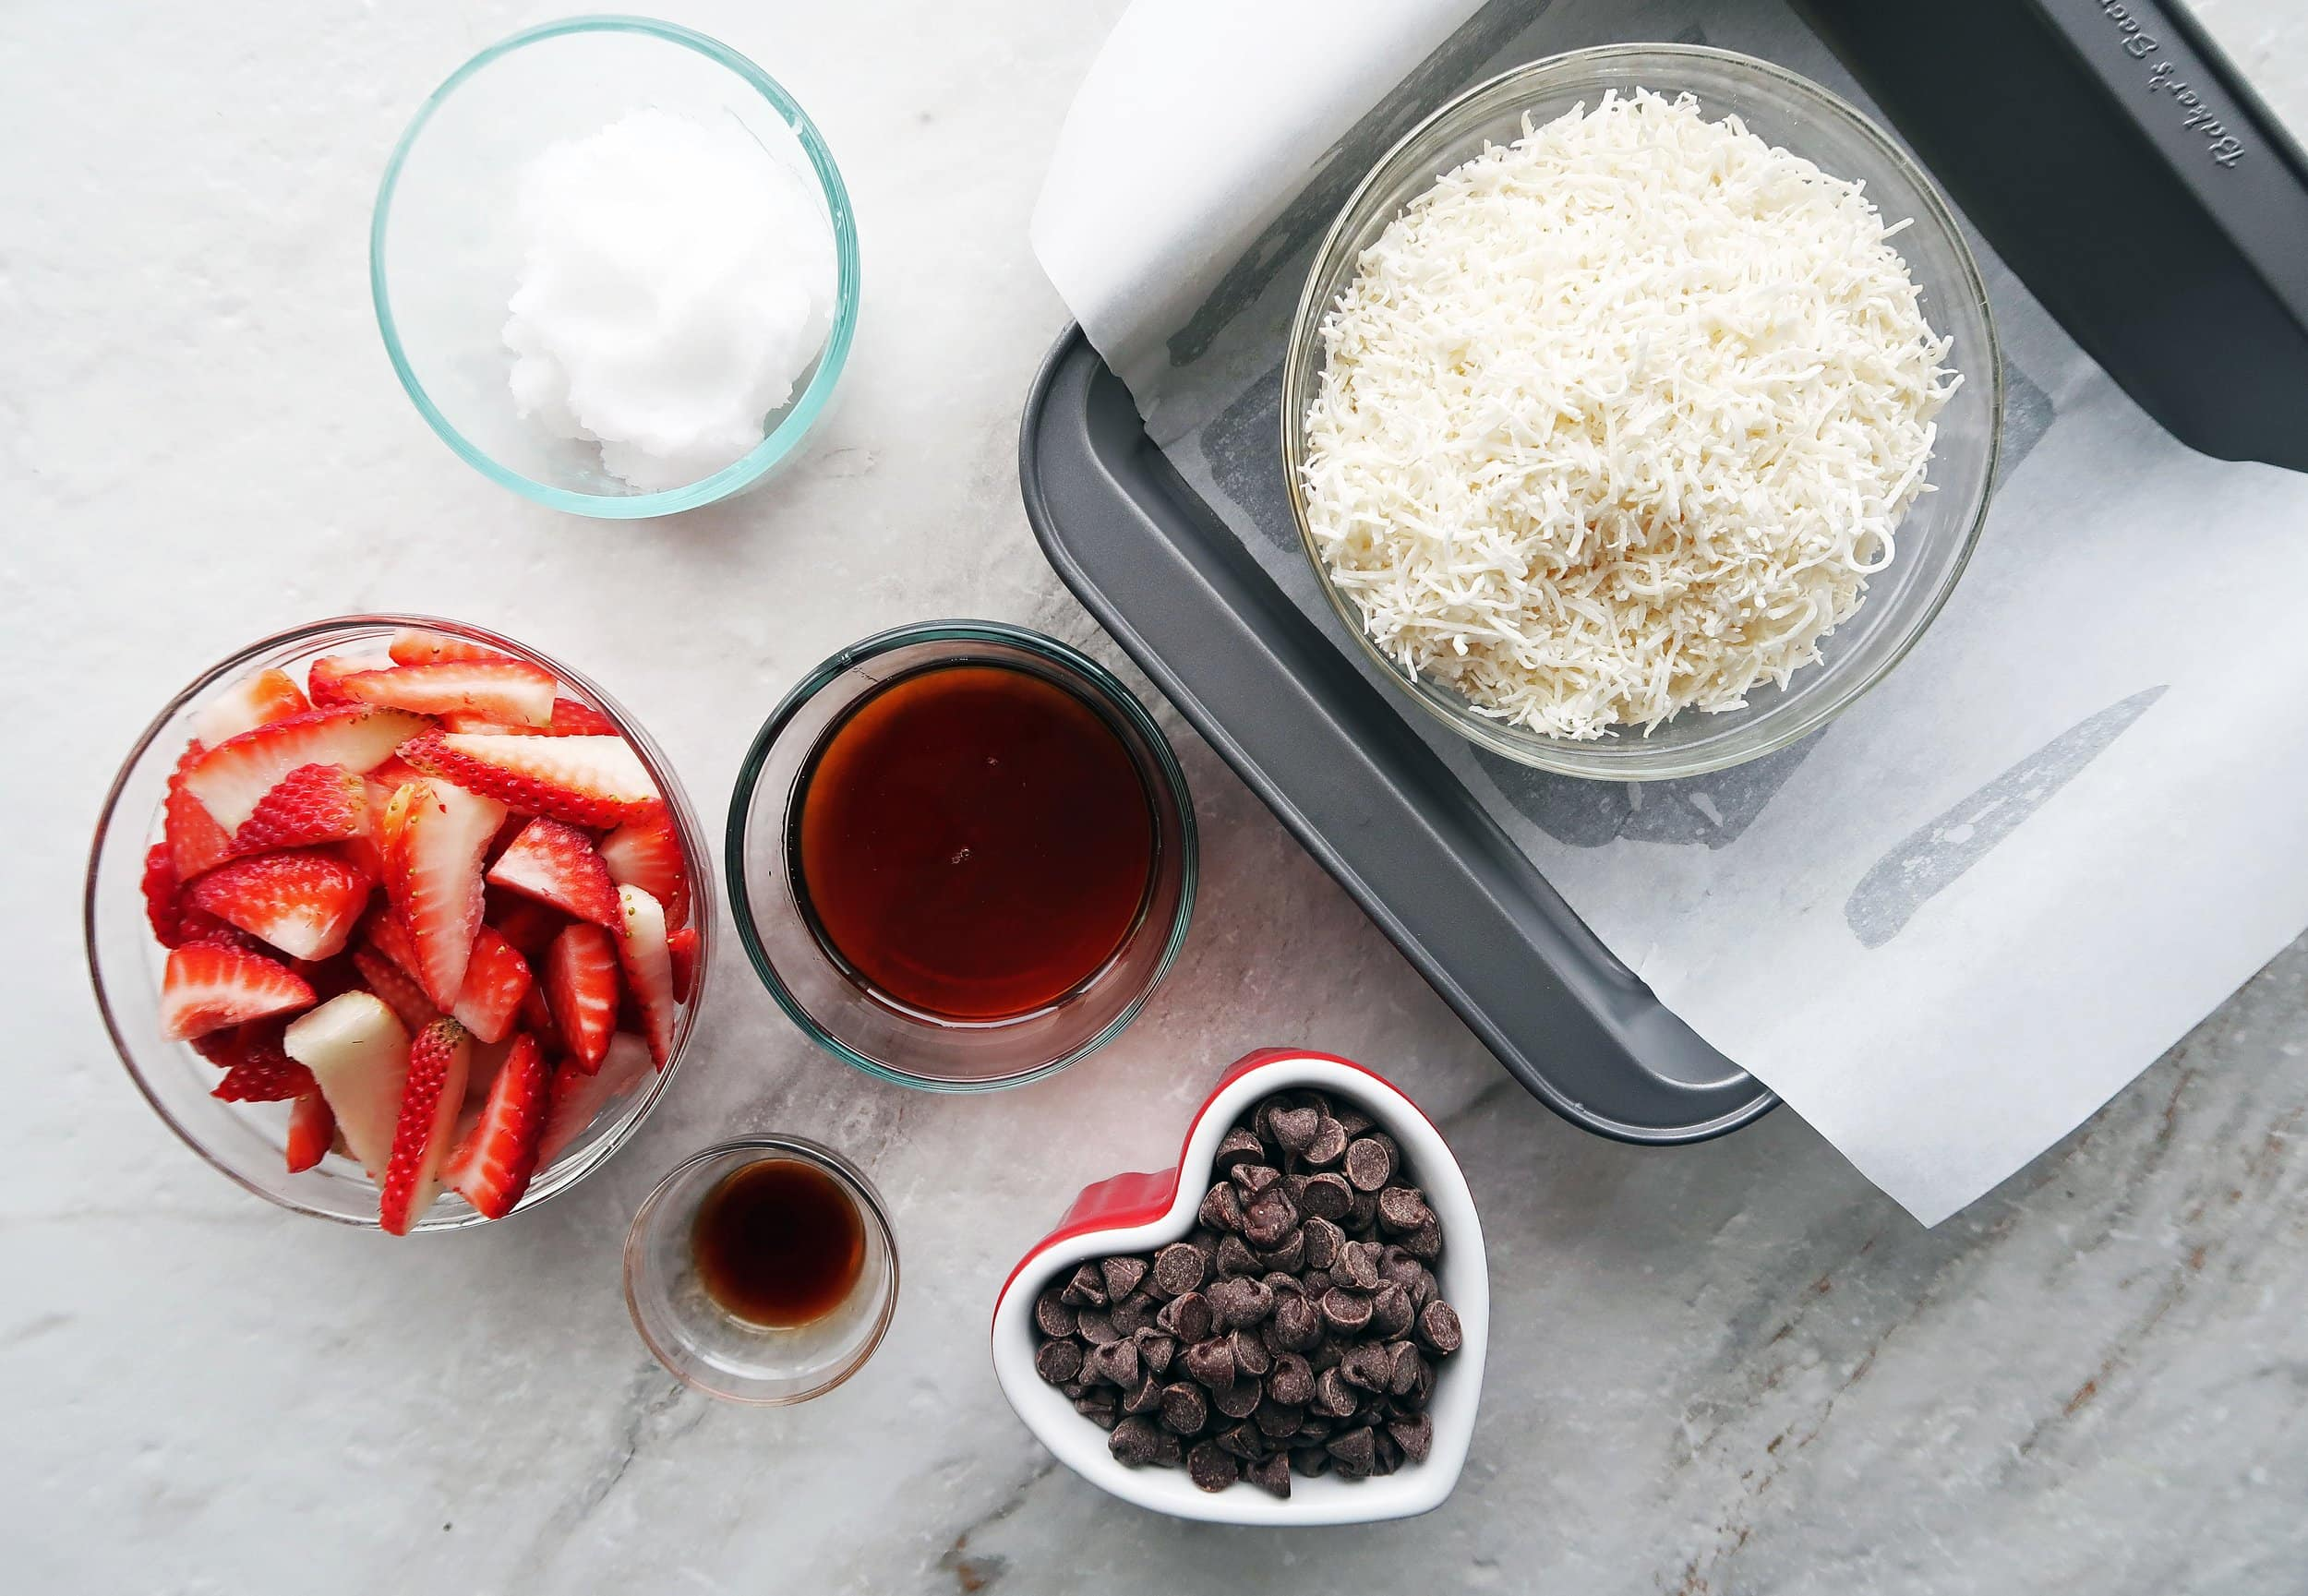 Bowls of strawberries, chocolate chips, maple syrup,and shredded coconut.